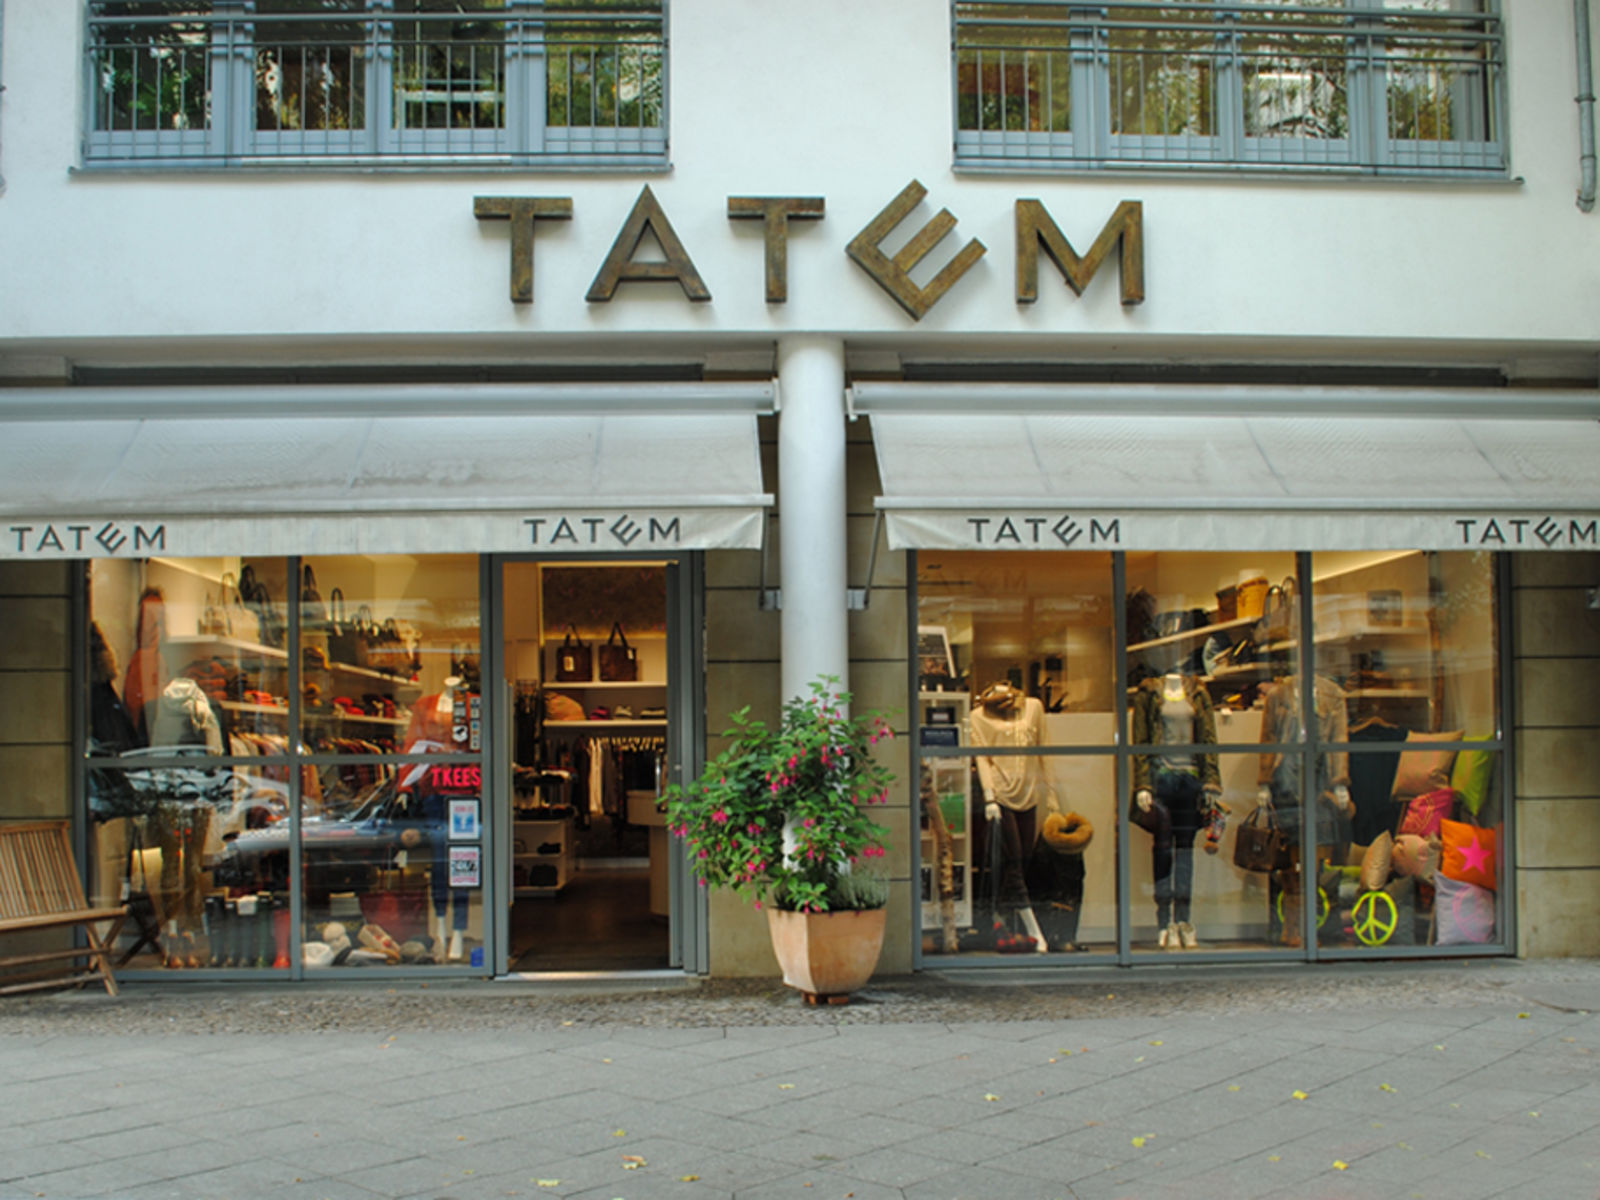 Tatem in Berlin (Bild 4)